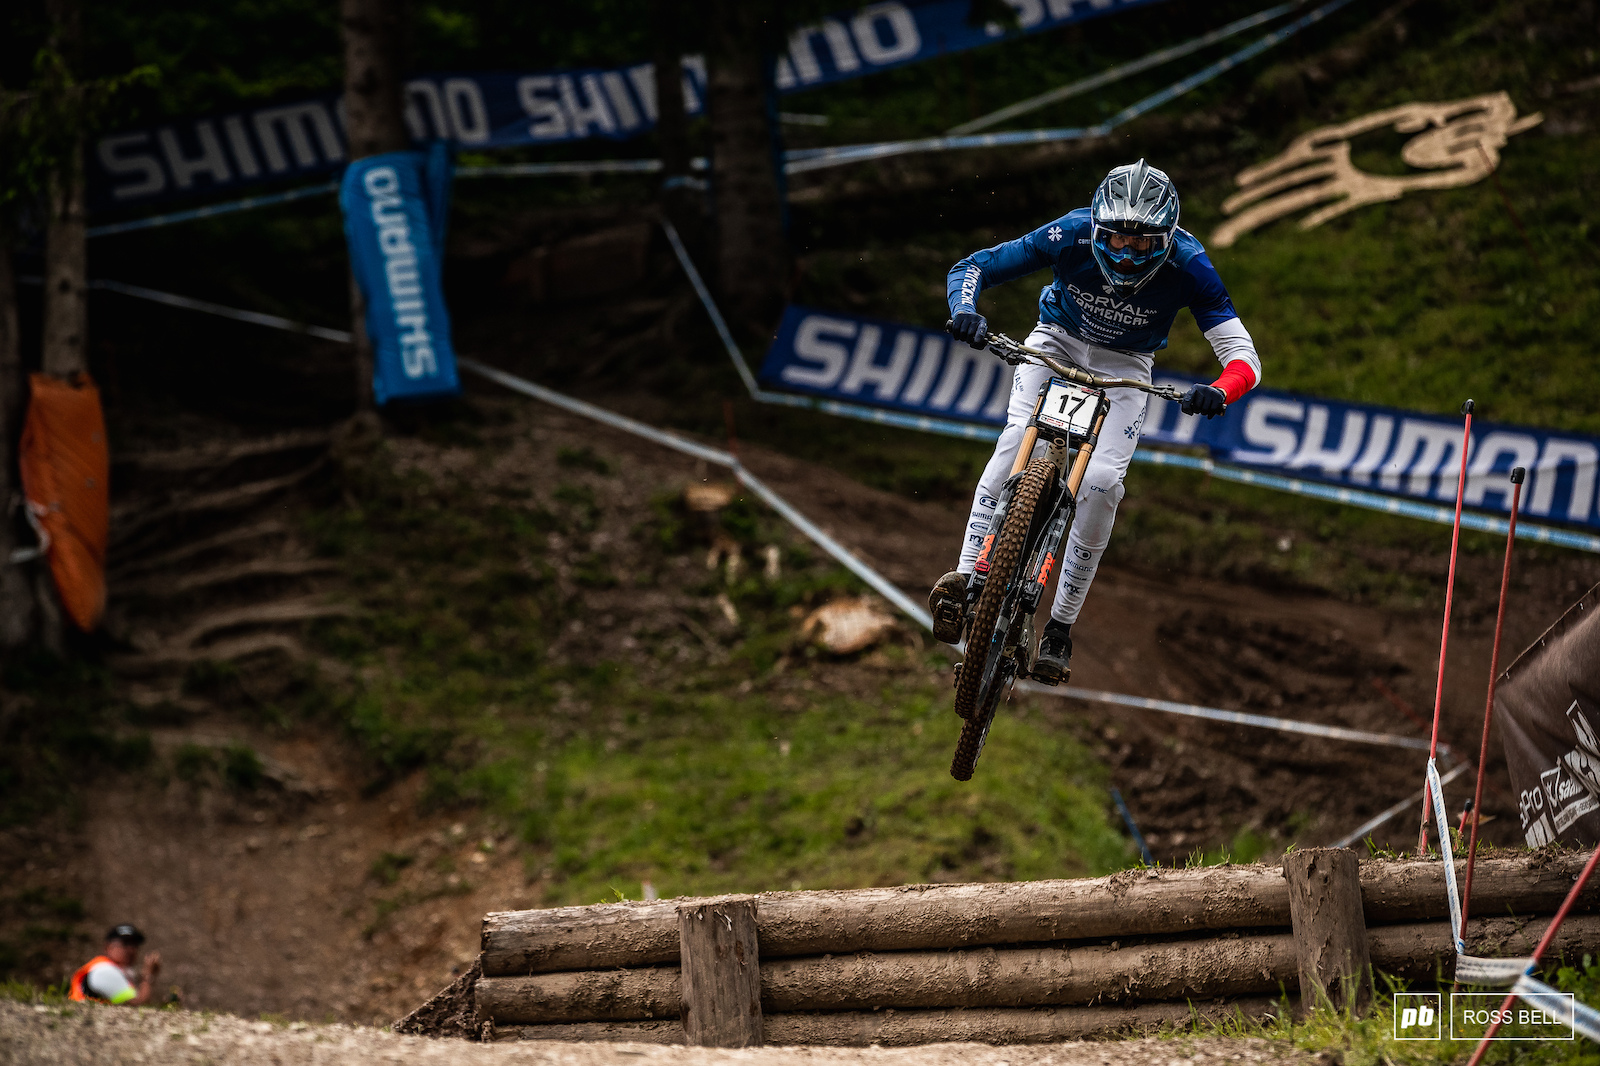 Benoit Coulanges has always been a threat and today he finally got that elusive World Cup podium he d been chasing.